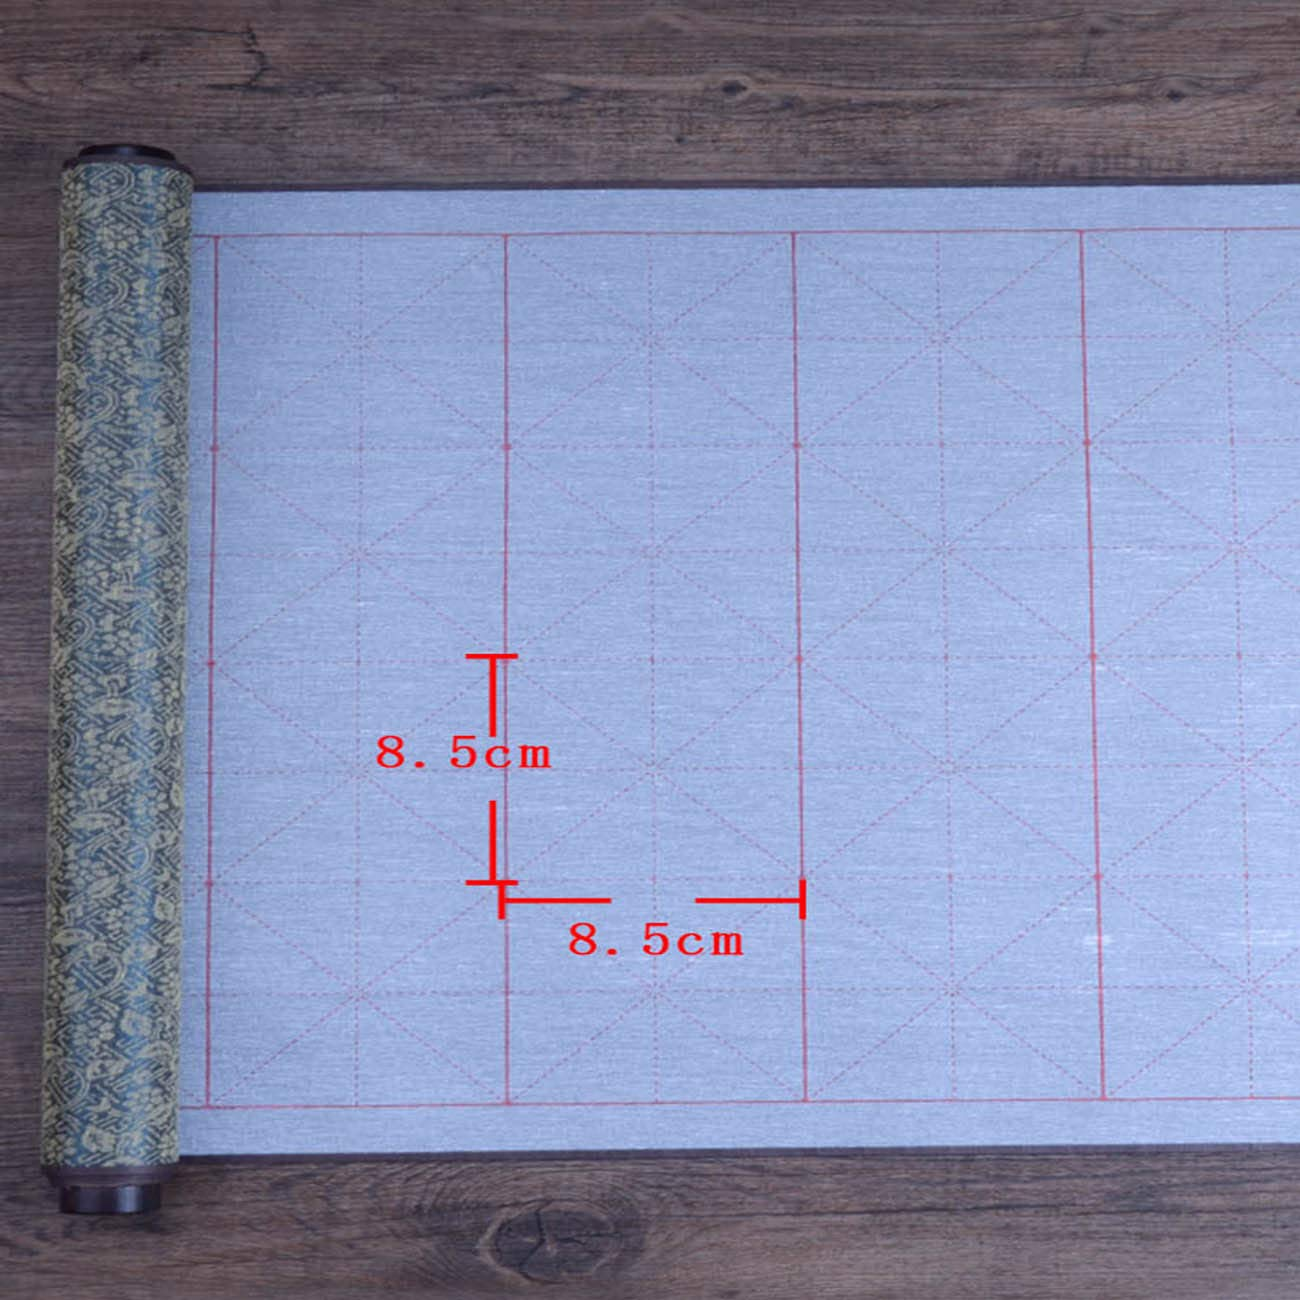 Tianjintang Eco-Friendly Chinese Calligraphy No Ink Needed Embroidery Water Writing Magic Scroll with Grids Squares for Calligraphy Learner 80cmx38cm